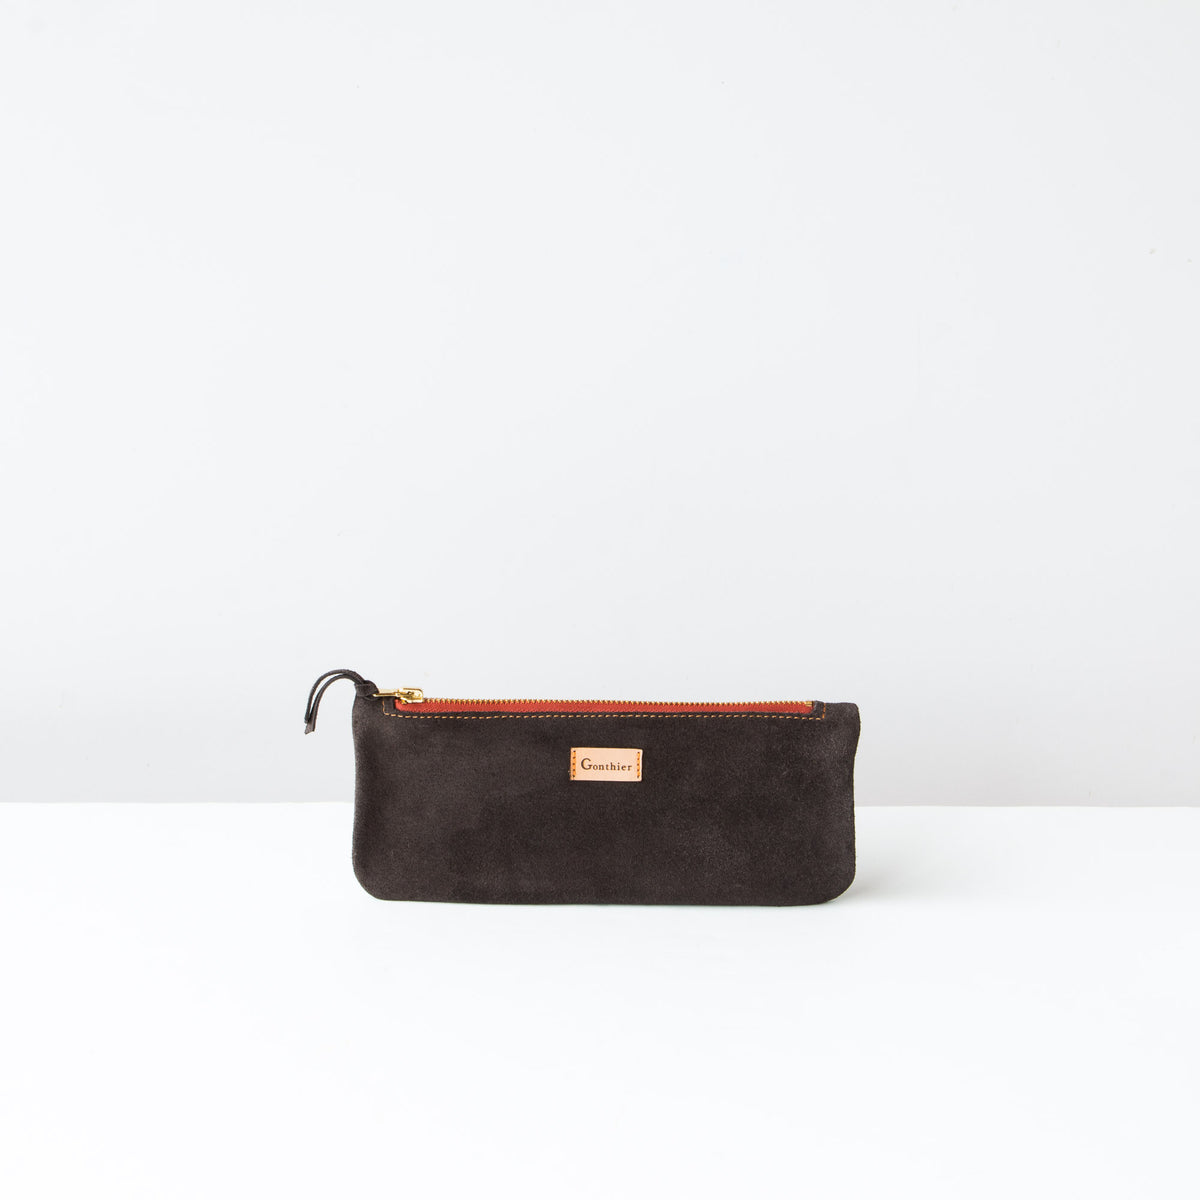 Greystone & Orange - Handmade Long Pouch in Suede Calfskin - Sold by Chic & Basta